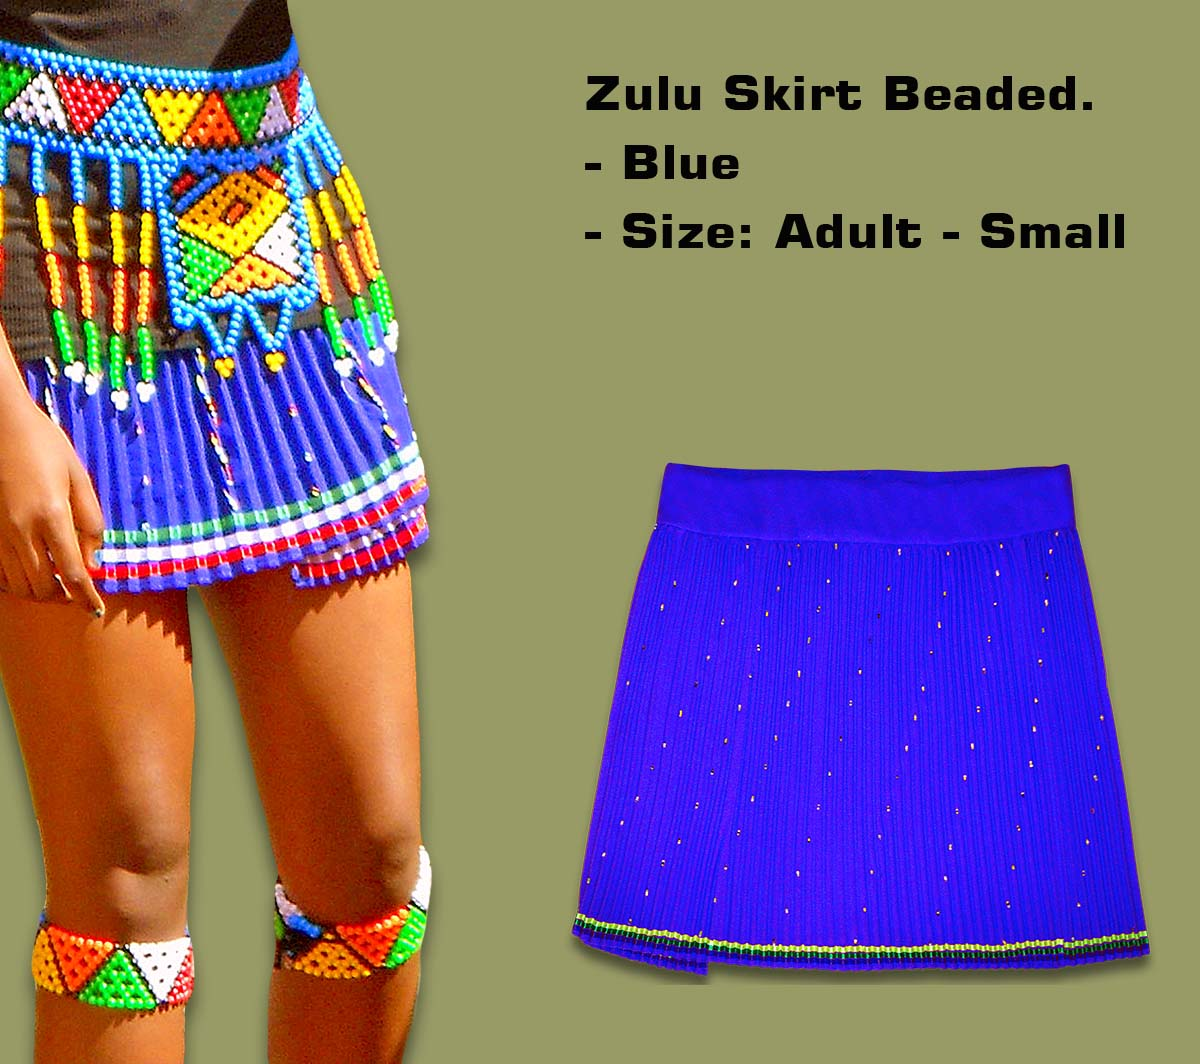 Beaded Zulu Skirt Adult Blue Small